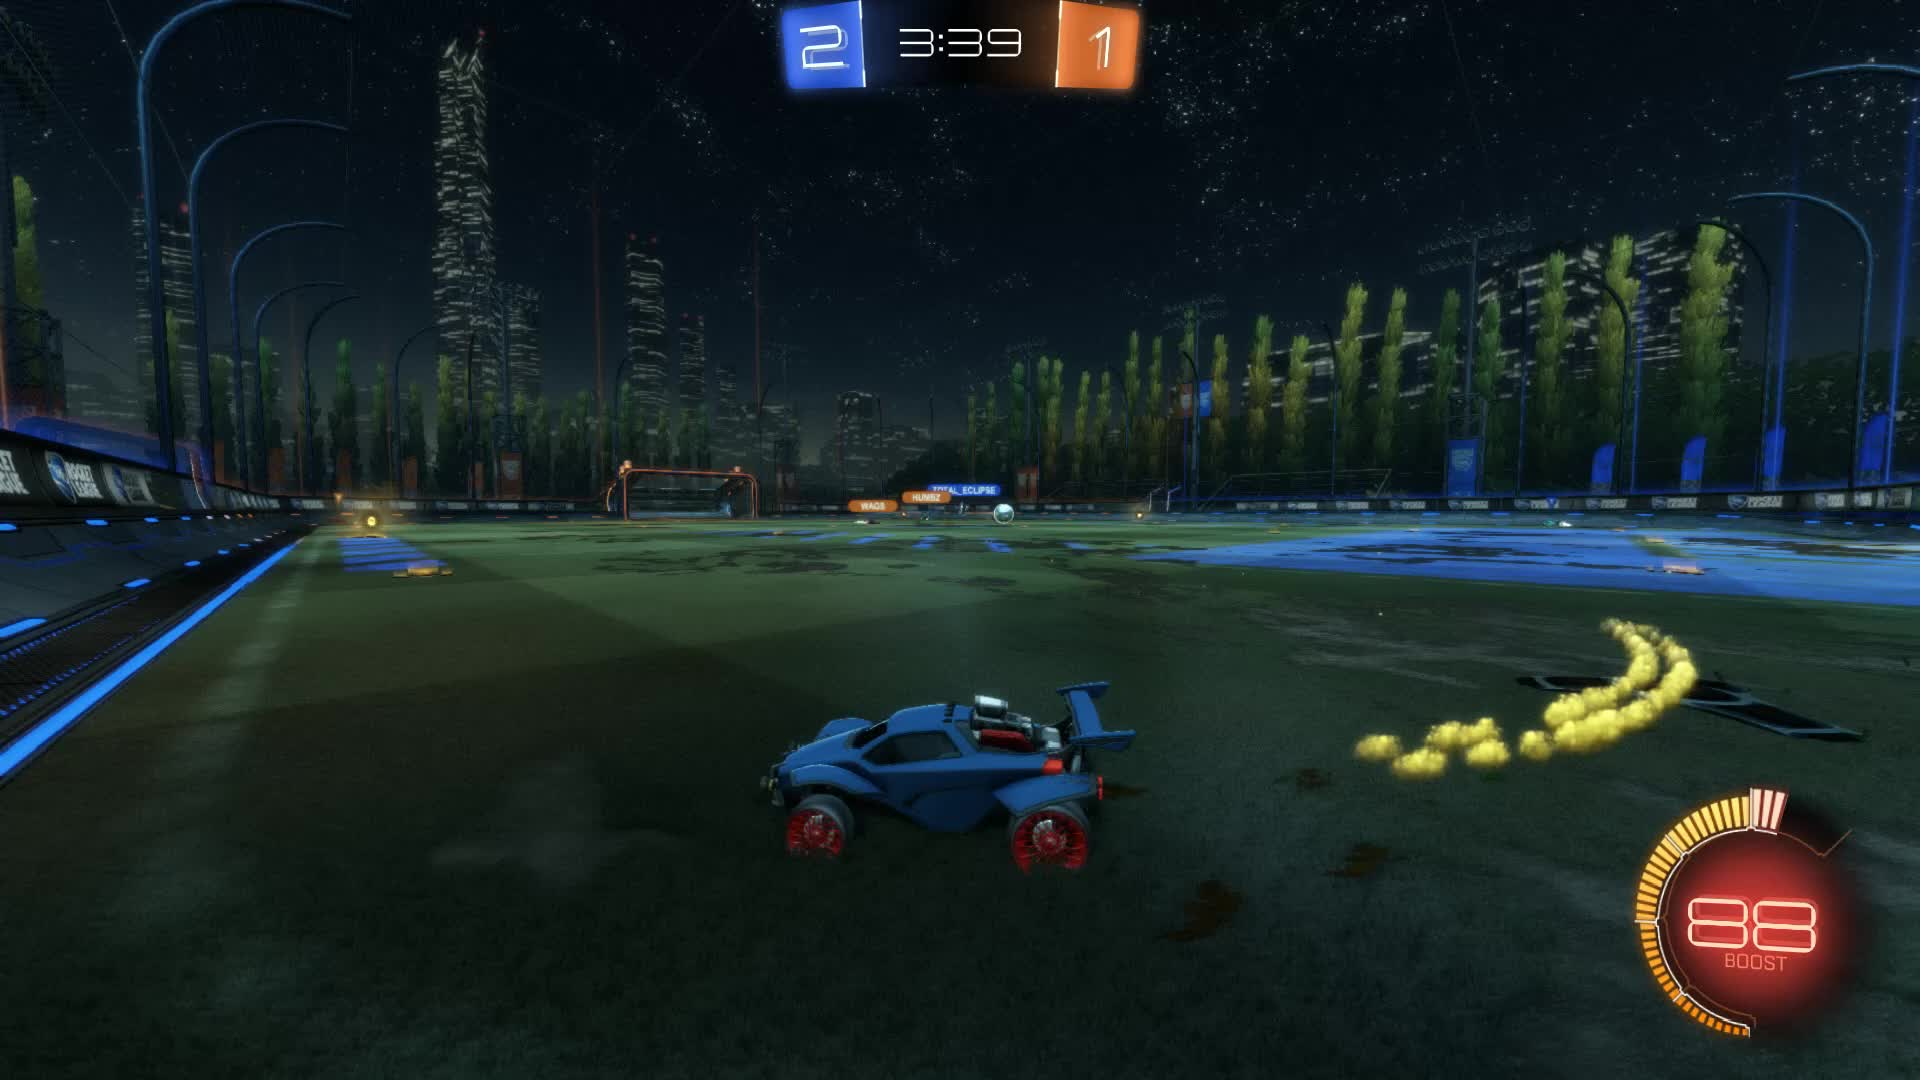 Gif Your Game, GifYourGame, Goal, Rocket League, RocketLeague, Tack, Goal 4: Tack GIFs